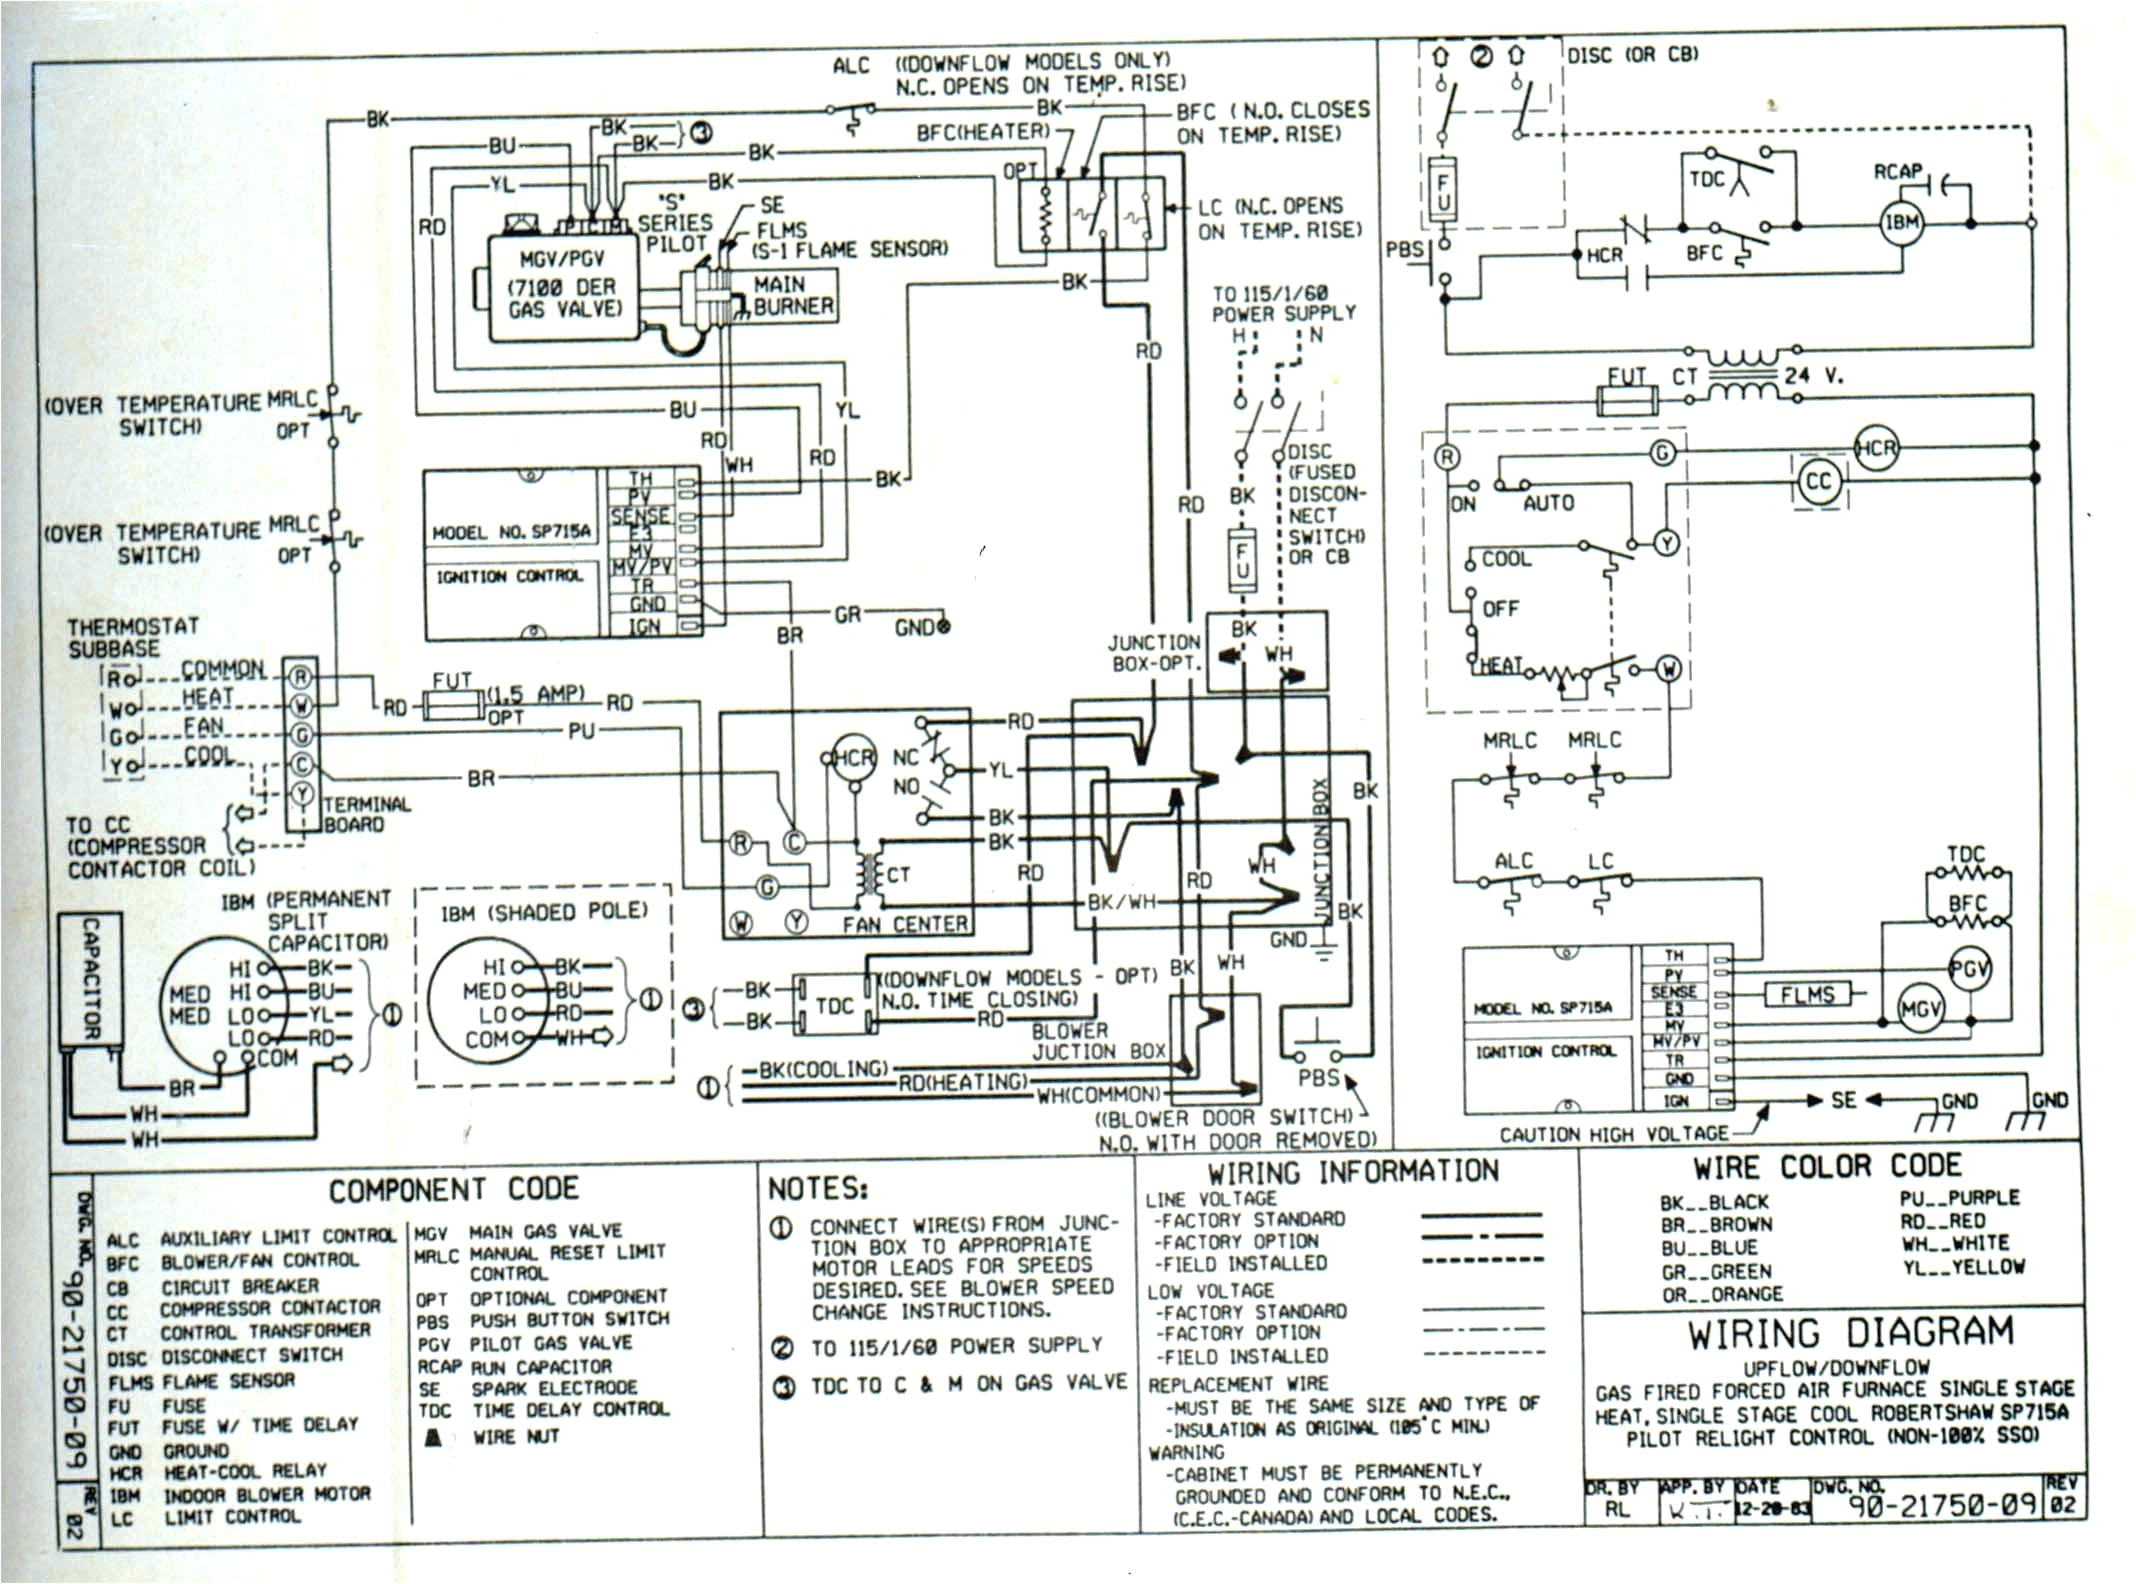 trane vfd wiring diagrams data diagram schematic trane vfd wiring diagram trane vfd wiring diagrams